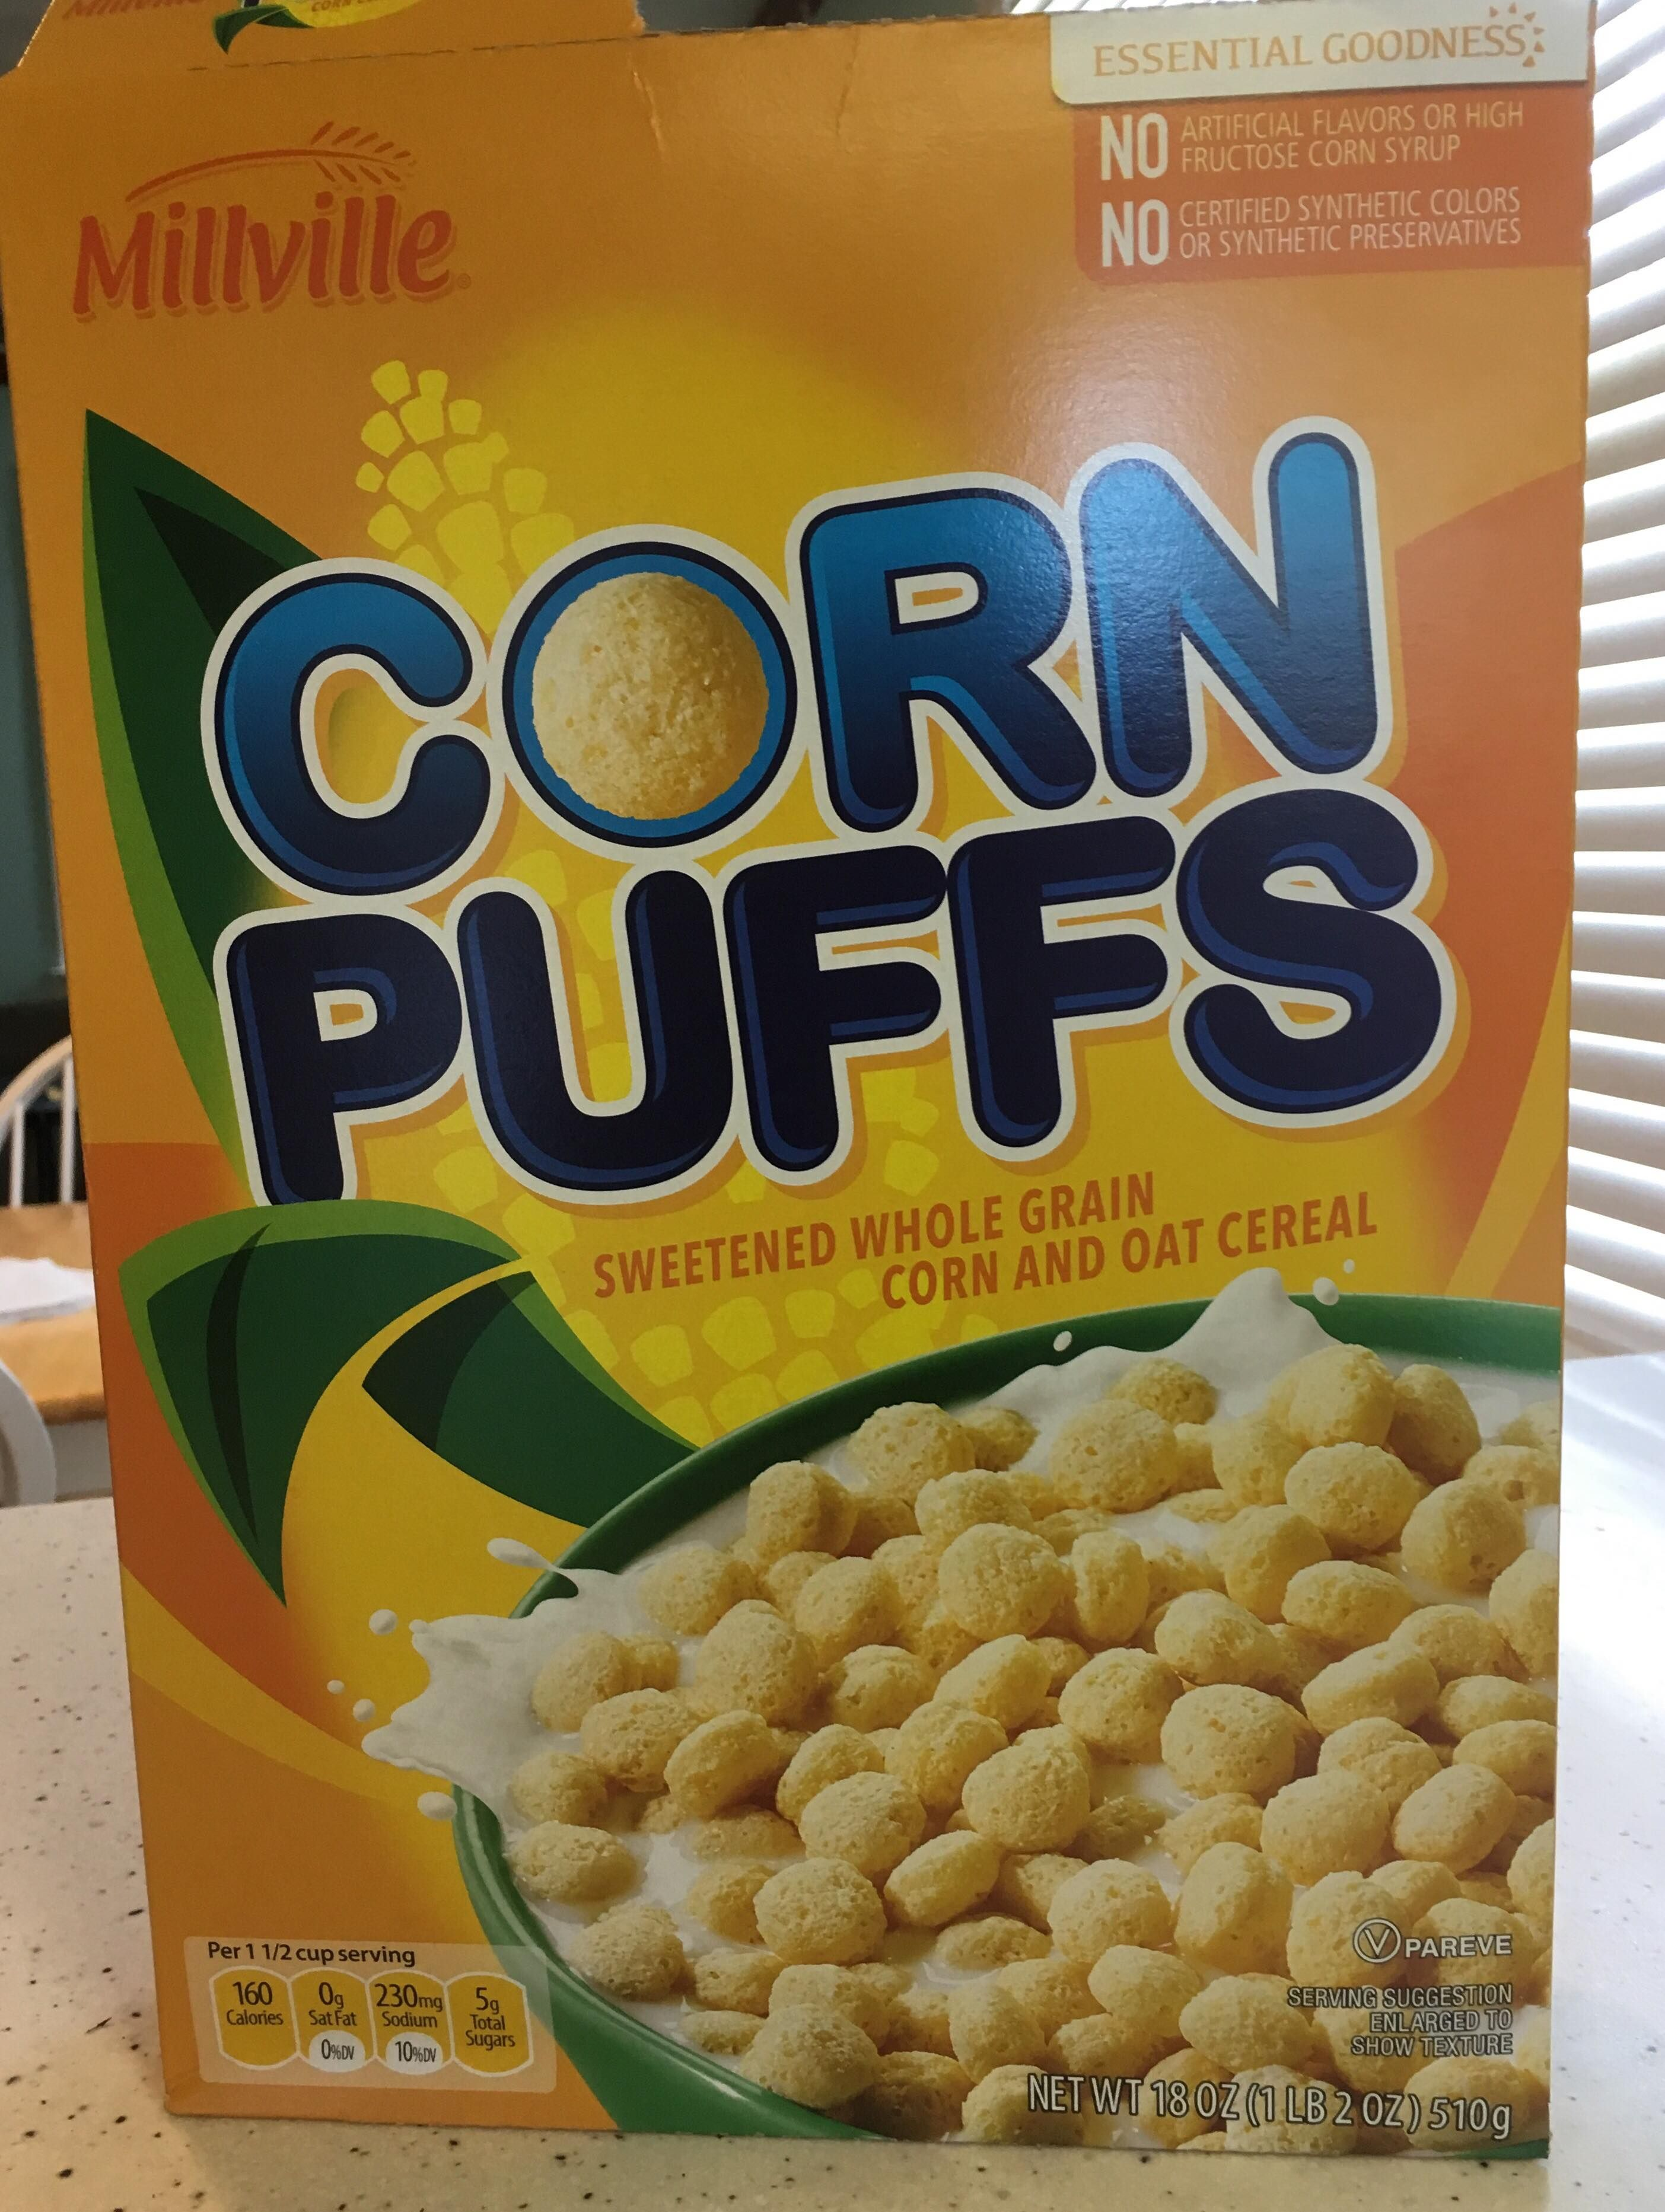 Millville Corn Puffs Corn Puffs Oat Cereal Special Recipes